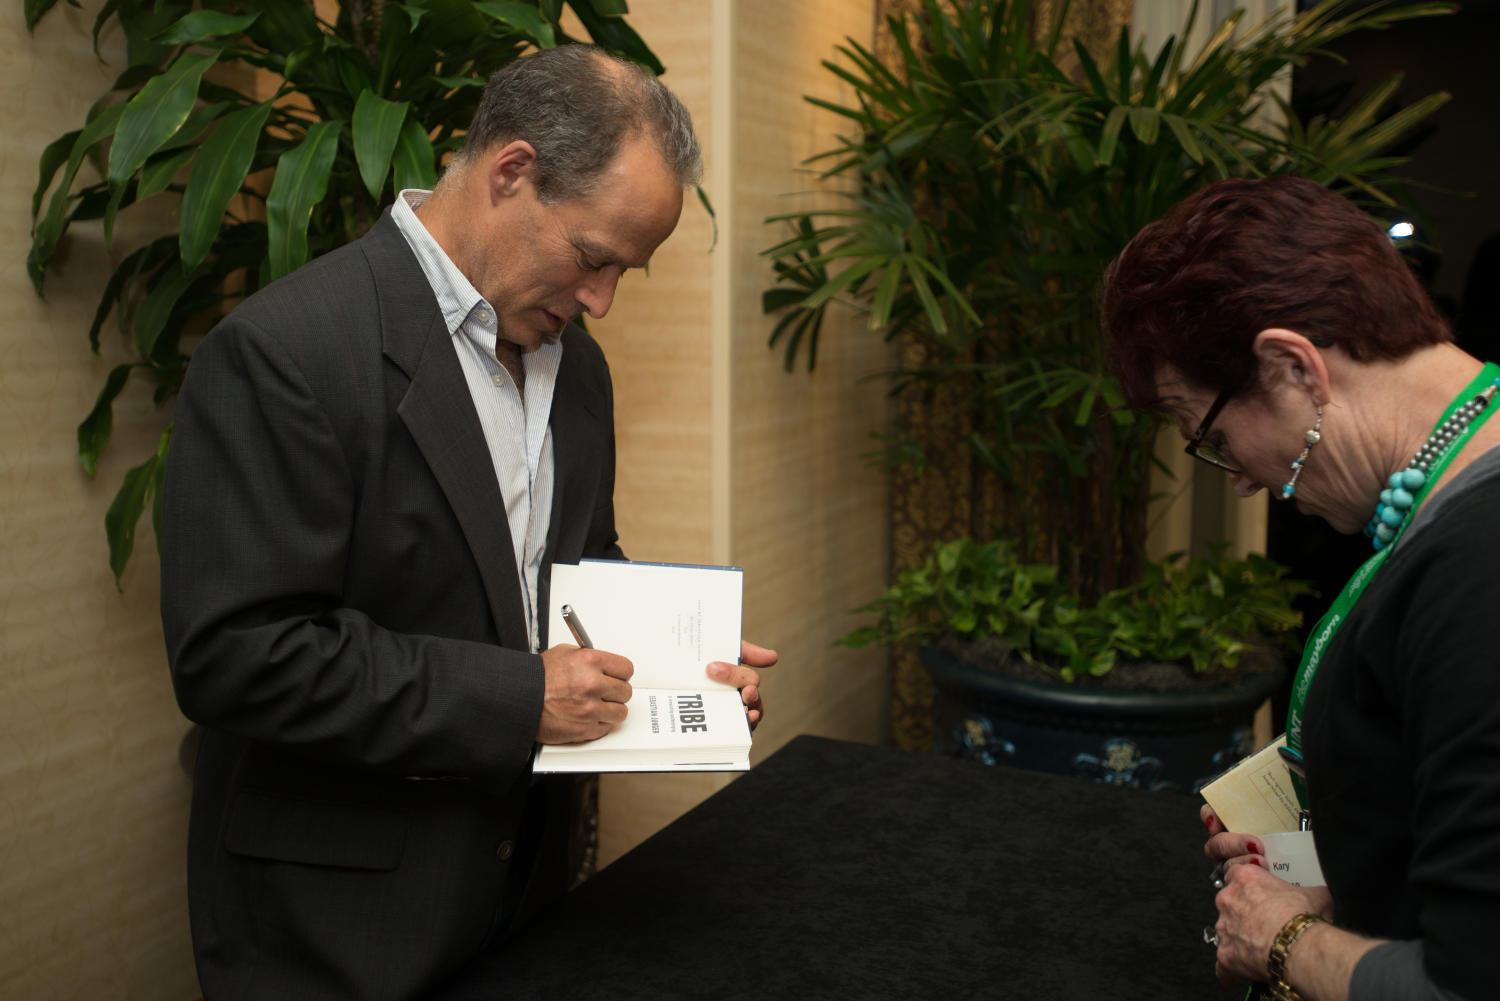 """[Sebastian Junger signing his book], Photograph of Sebastian Junger, author of the book """"Tribe"""", signing a copy of his book for a conference attendee with the first name Kary. They are standing at a table set up against one of the walls outside of the dining area. The signing was a part of the 2017 Mayborn Literary Nonfiction Conference, which was held at the Hilton DFW Lakes Executive Conference Center in Grapevine, TX.,"""